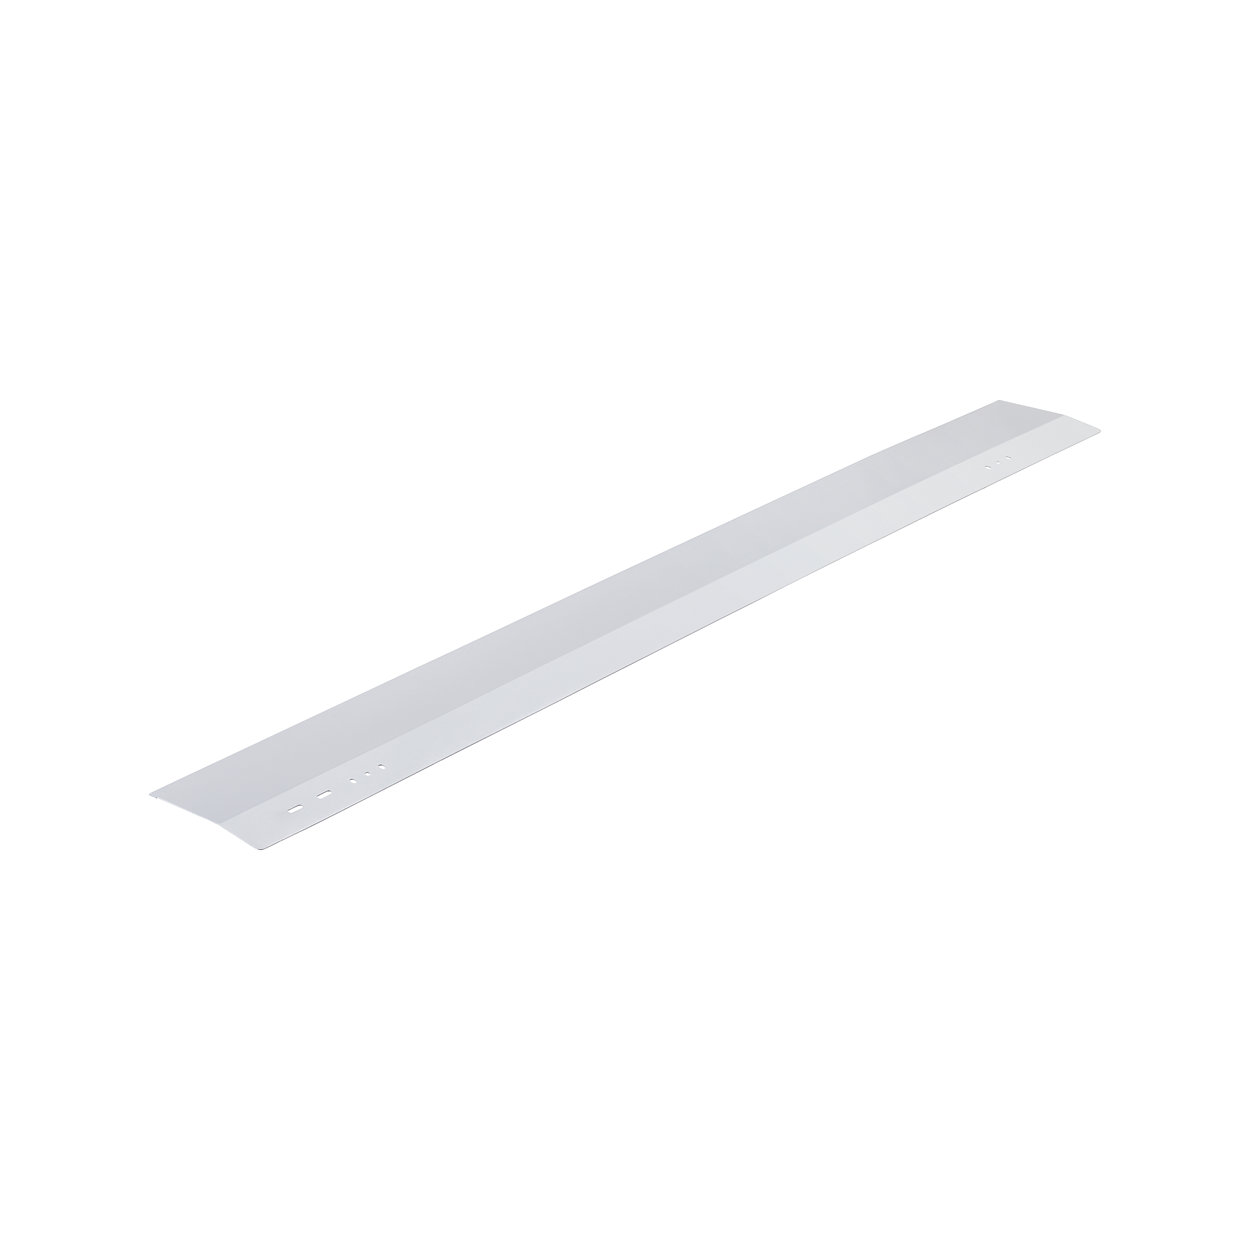 ColorGraze MX Powercore – Premium linear exterior LED wall grazing luminaires with RGB light